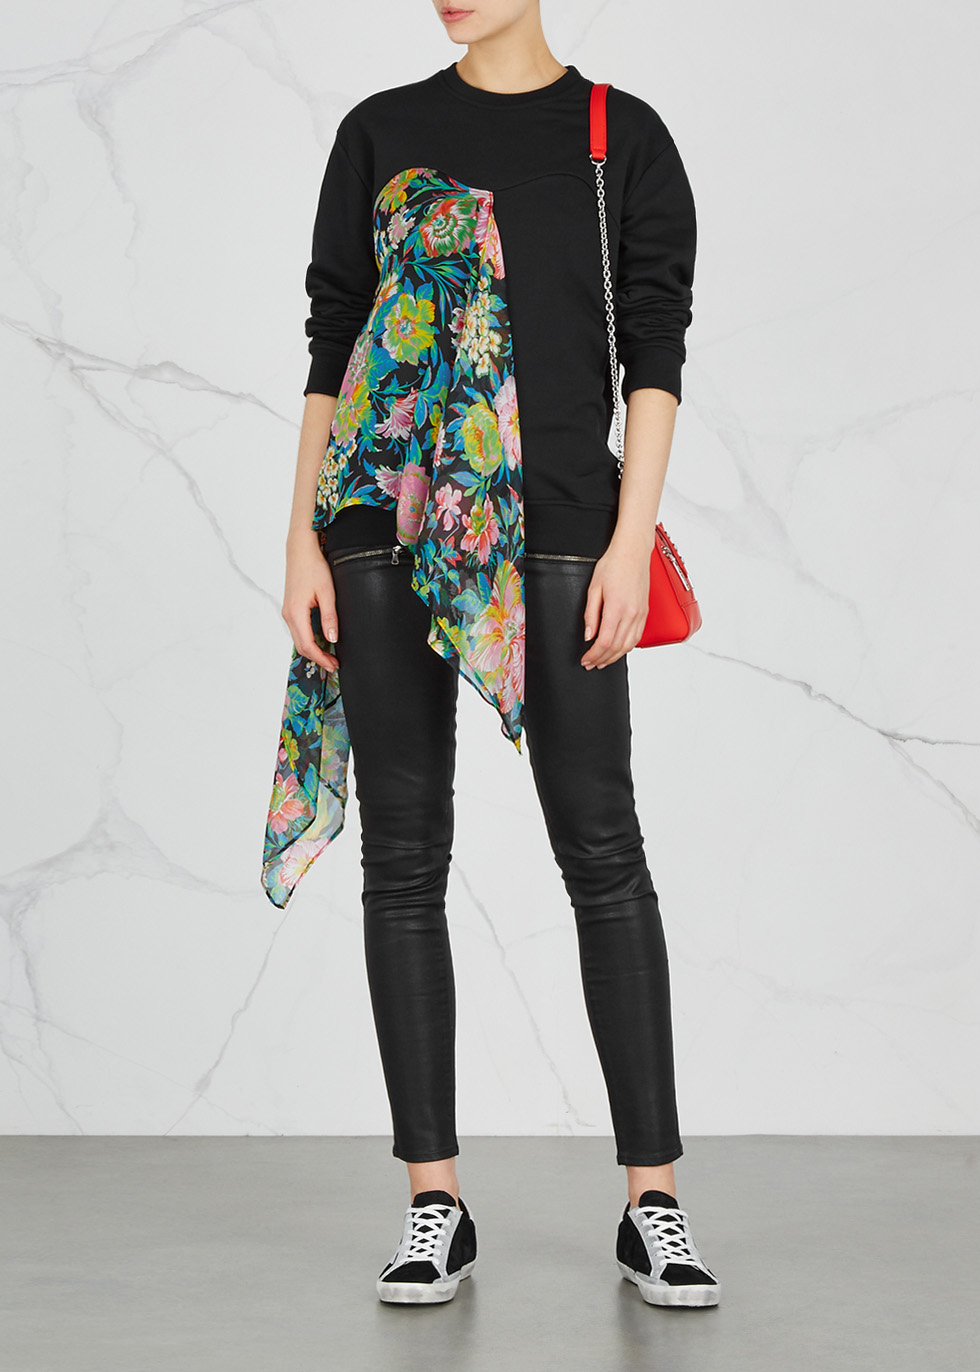 Edgemont zipped skinny coated jeans - Paige